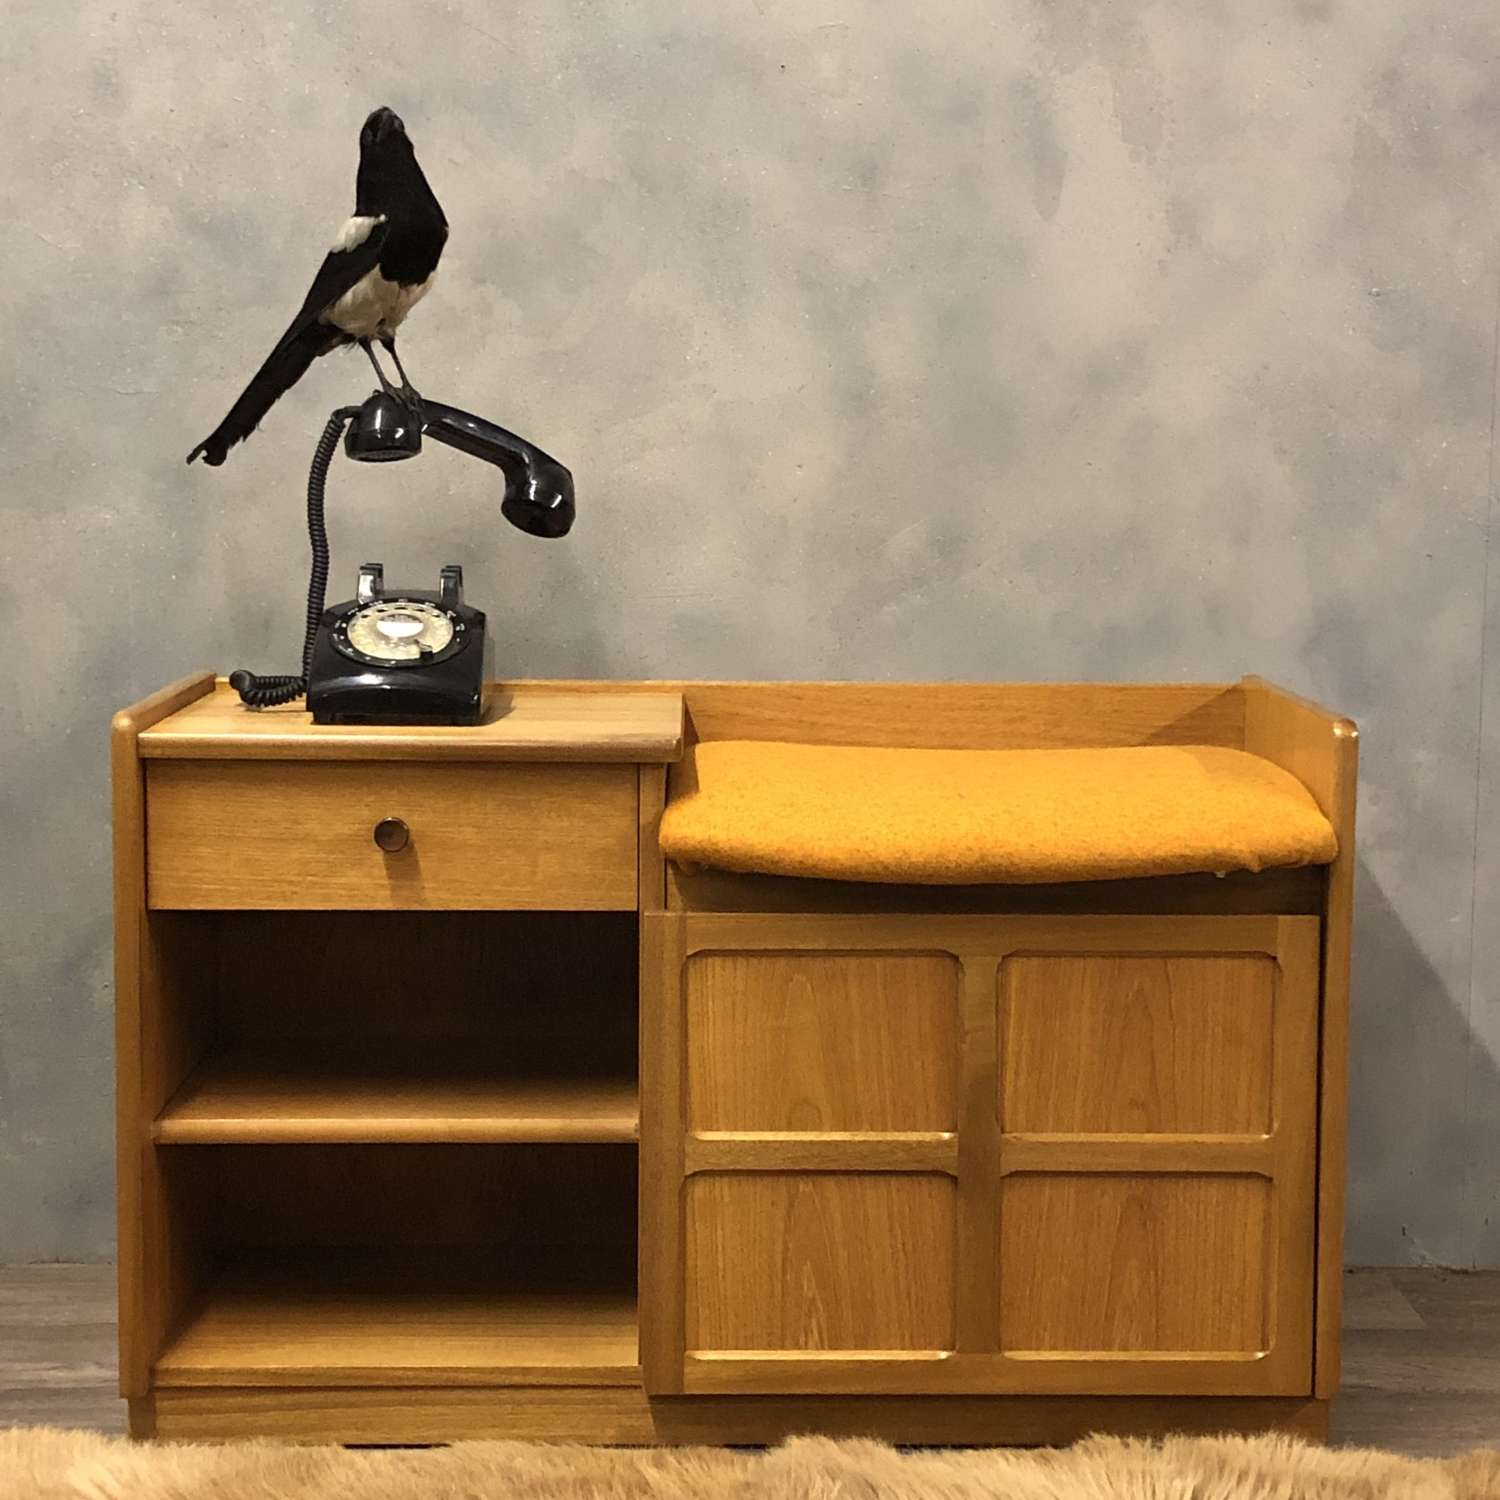 Parker Knoll telephone table